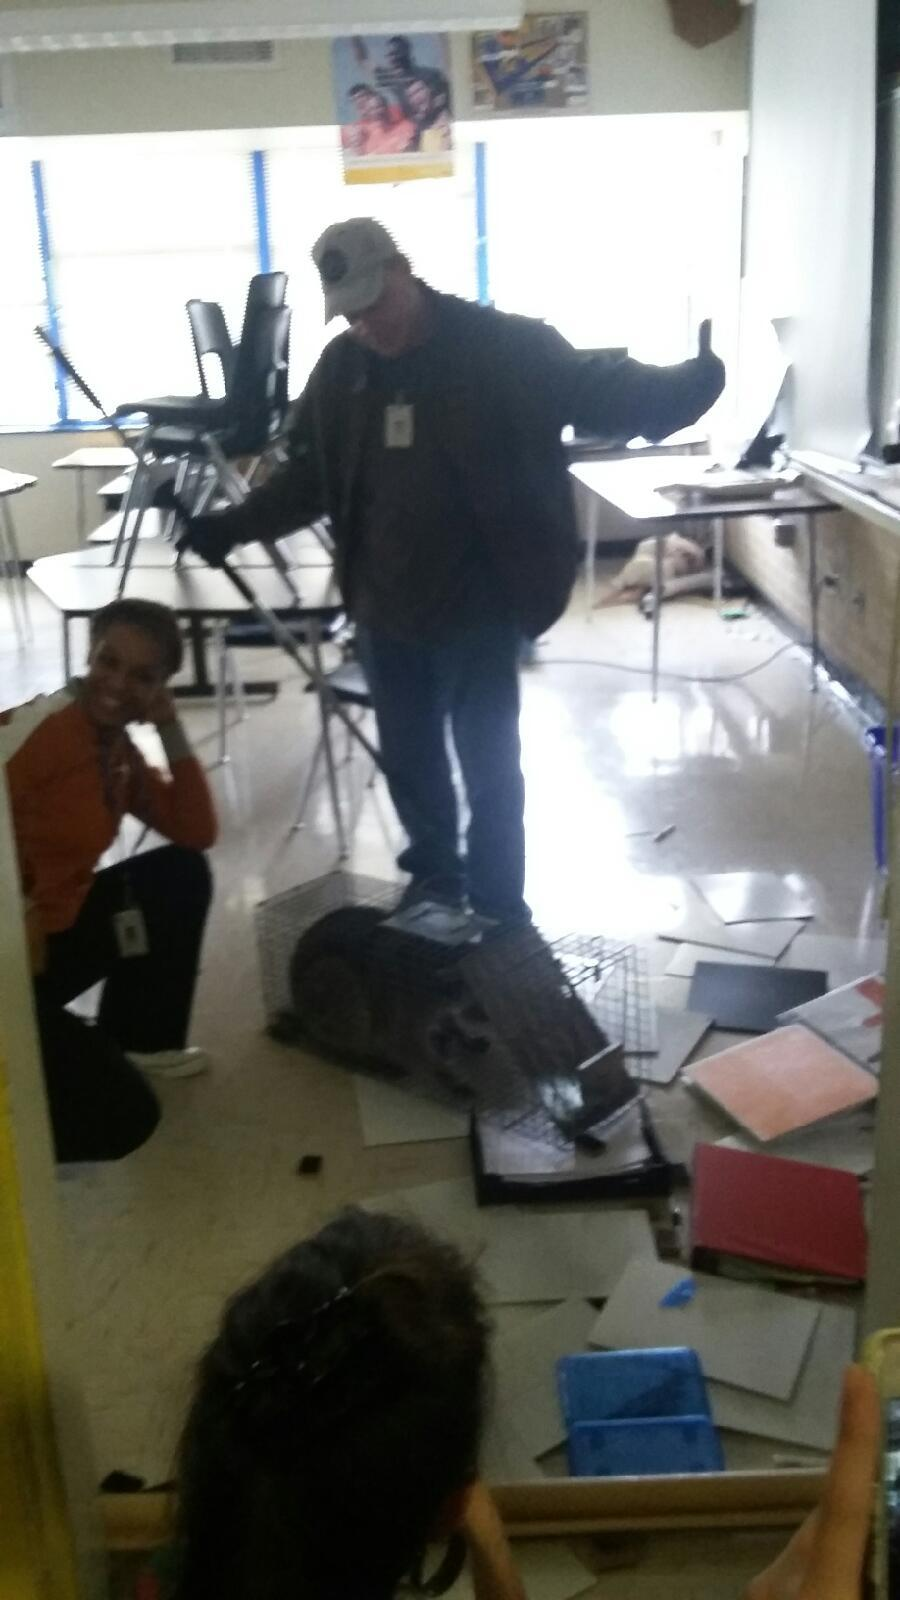 A look at some of the disarray and damage done by the raccoon in Mrs. Par's classroom on December 2nd.